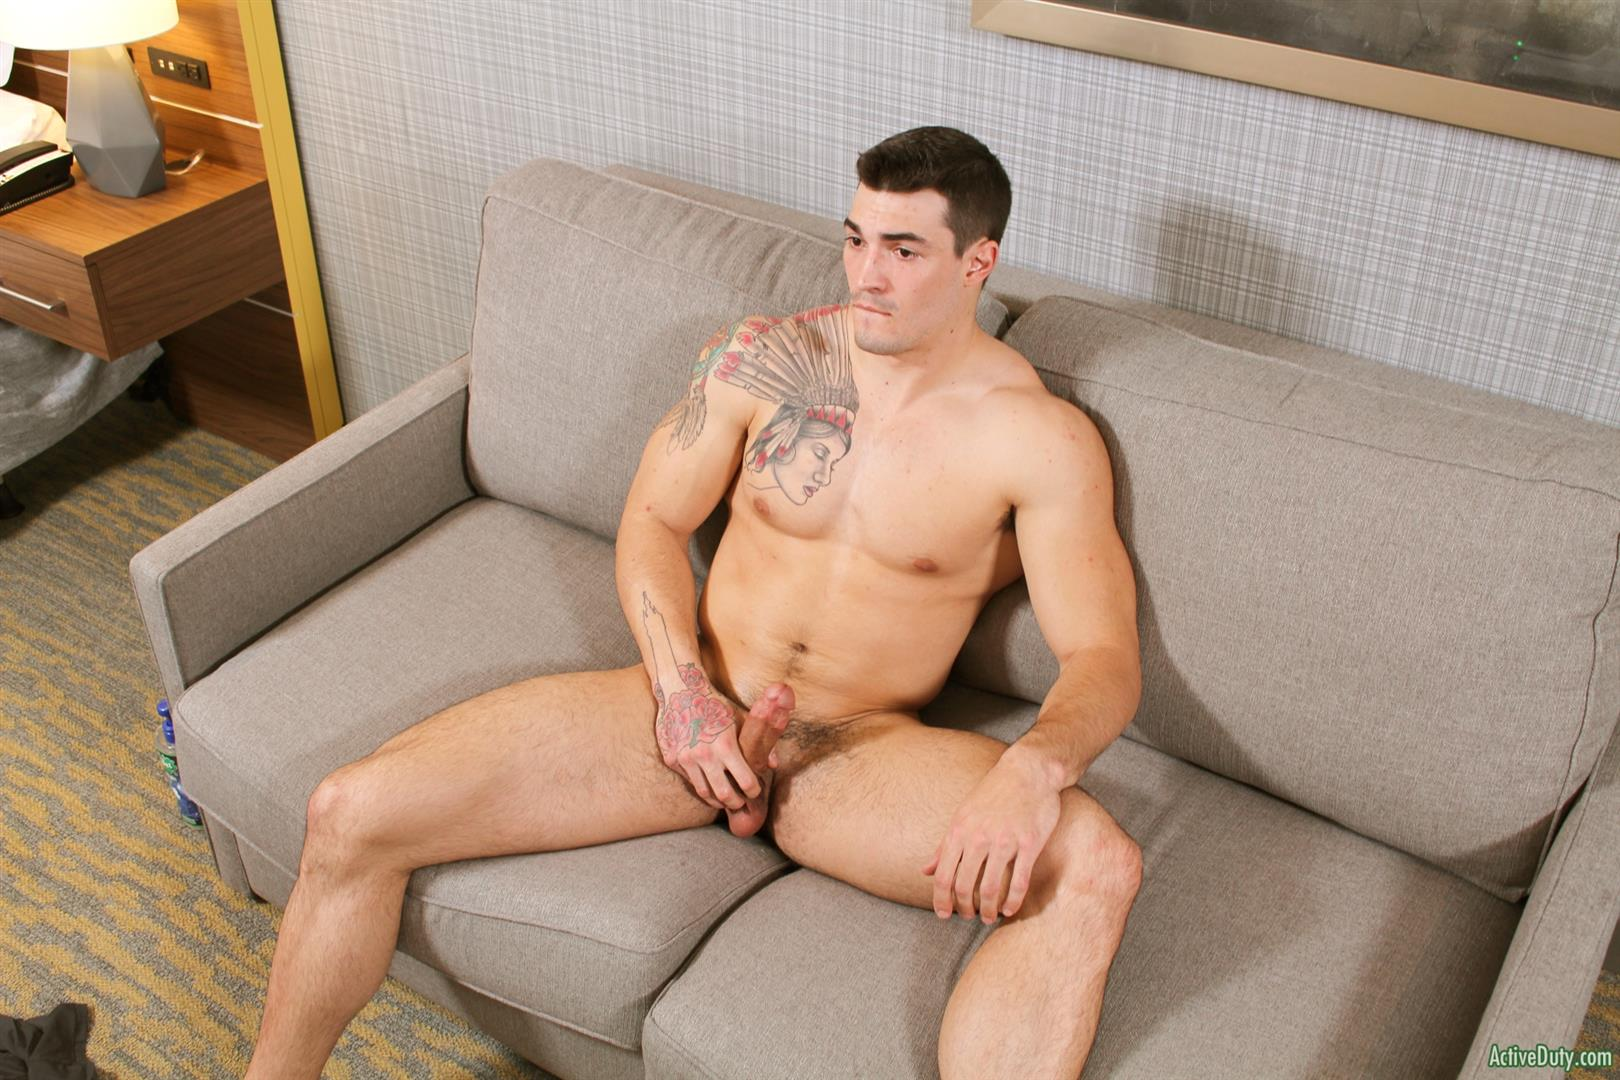 Active-Duty-Scott-Straight-Muscular-Army-Jock-Naked-Jerk-Off-Amateur-Gay-Porn-10 Straight Muscular Army Jock Auditions For Gay Porn